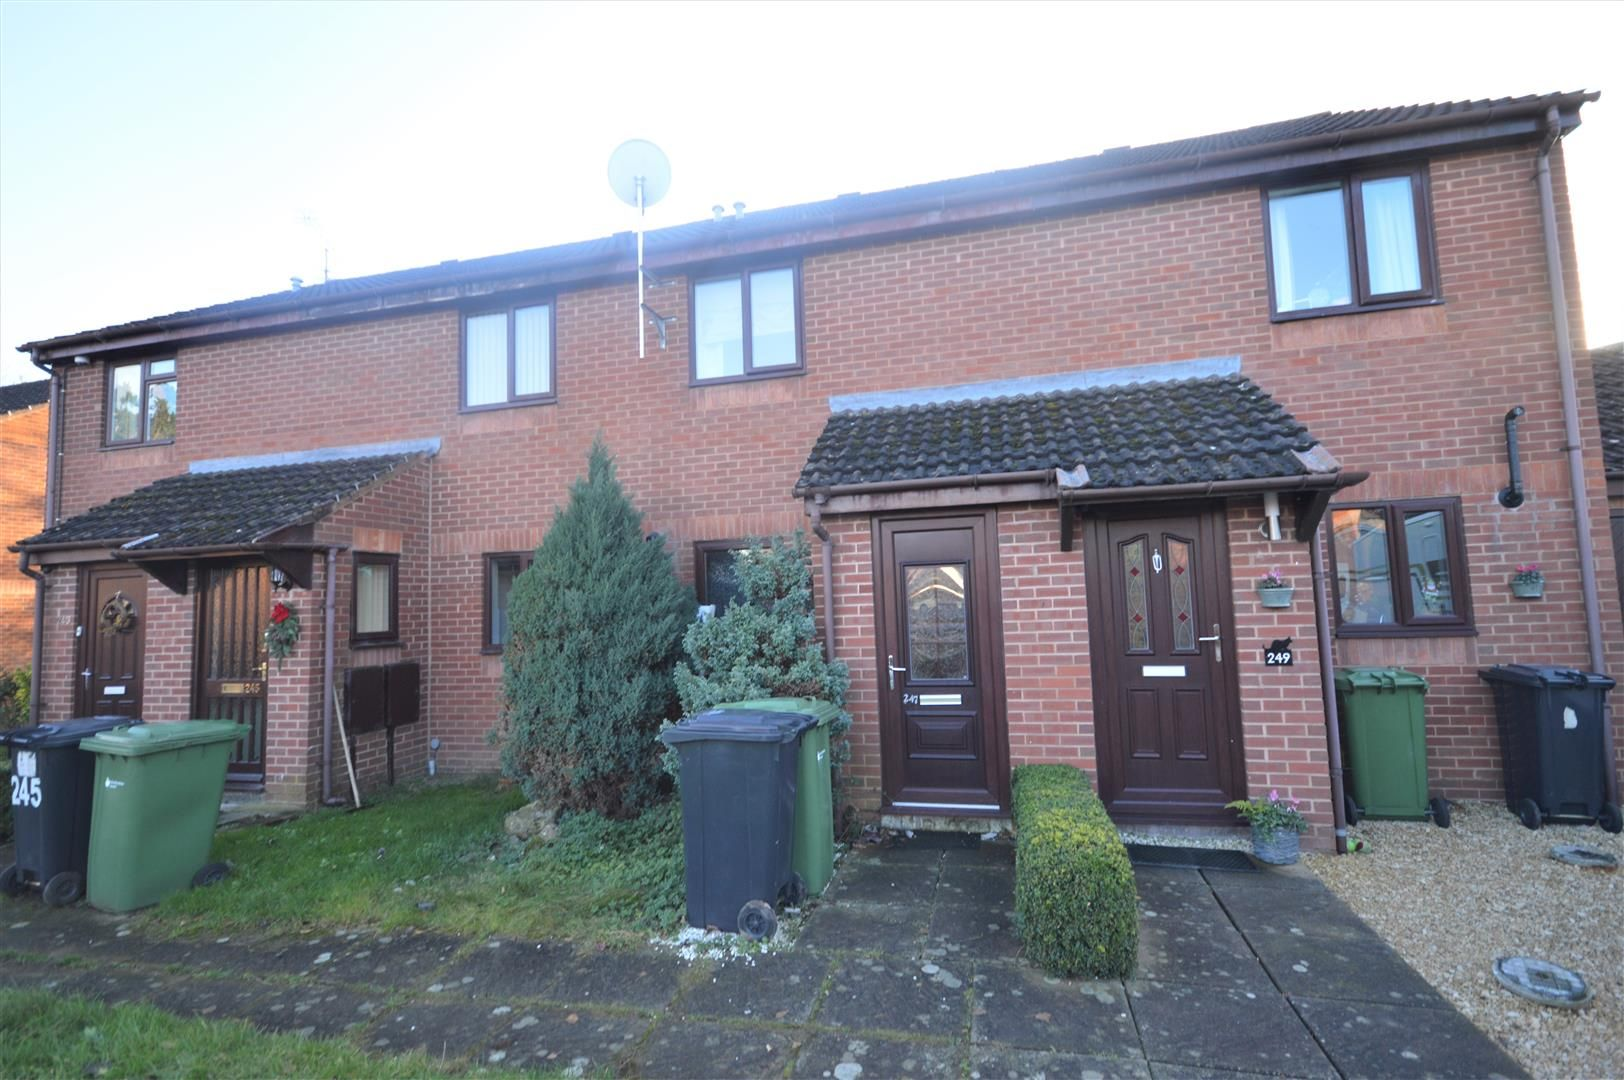 2 bed terraced for sale in Leominster - Property Image 1